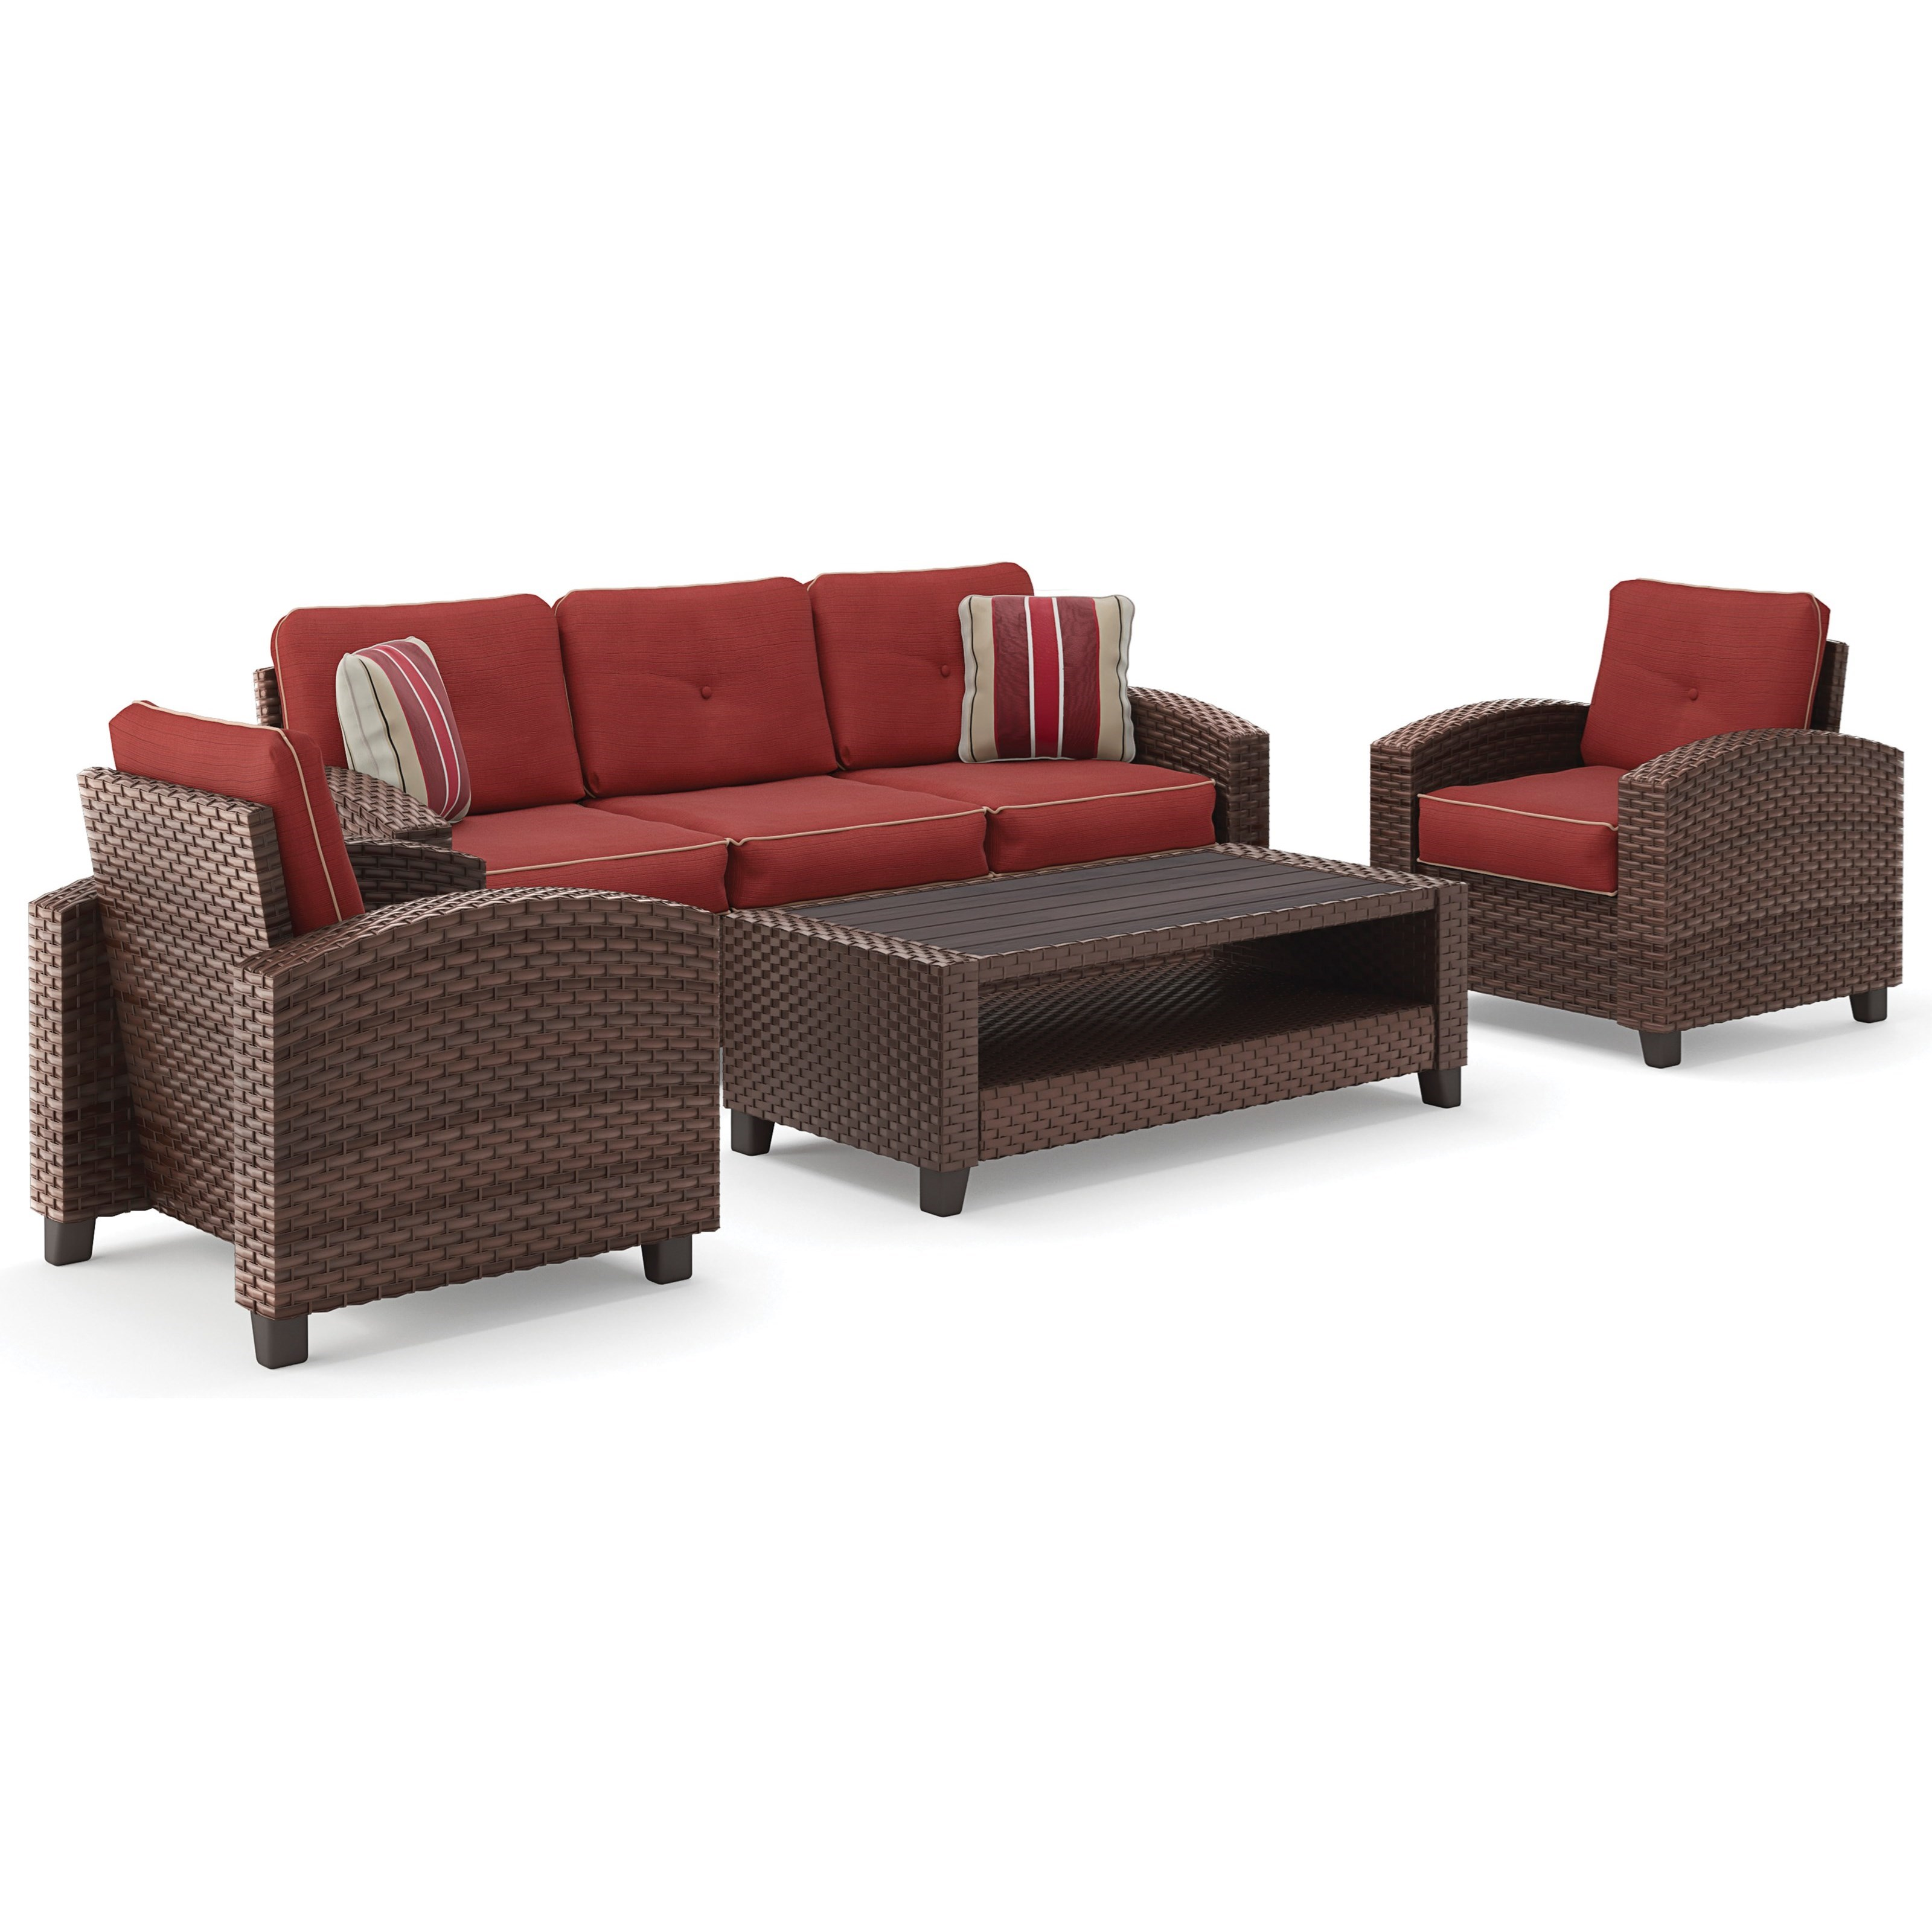 Signature Design by Ashley Meadowtown Outdoor Conversation Set - Item Number: P333-081